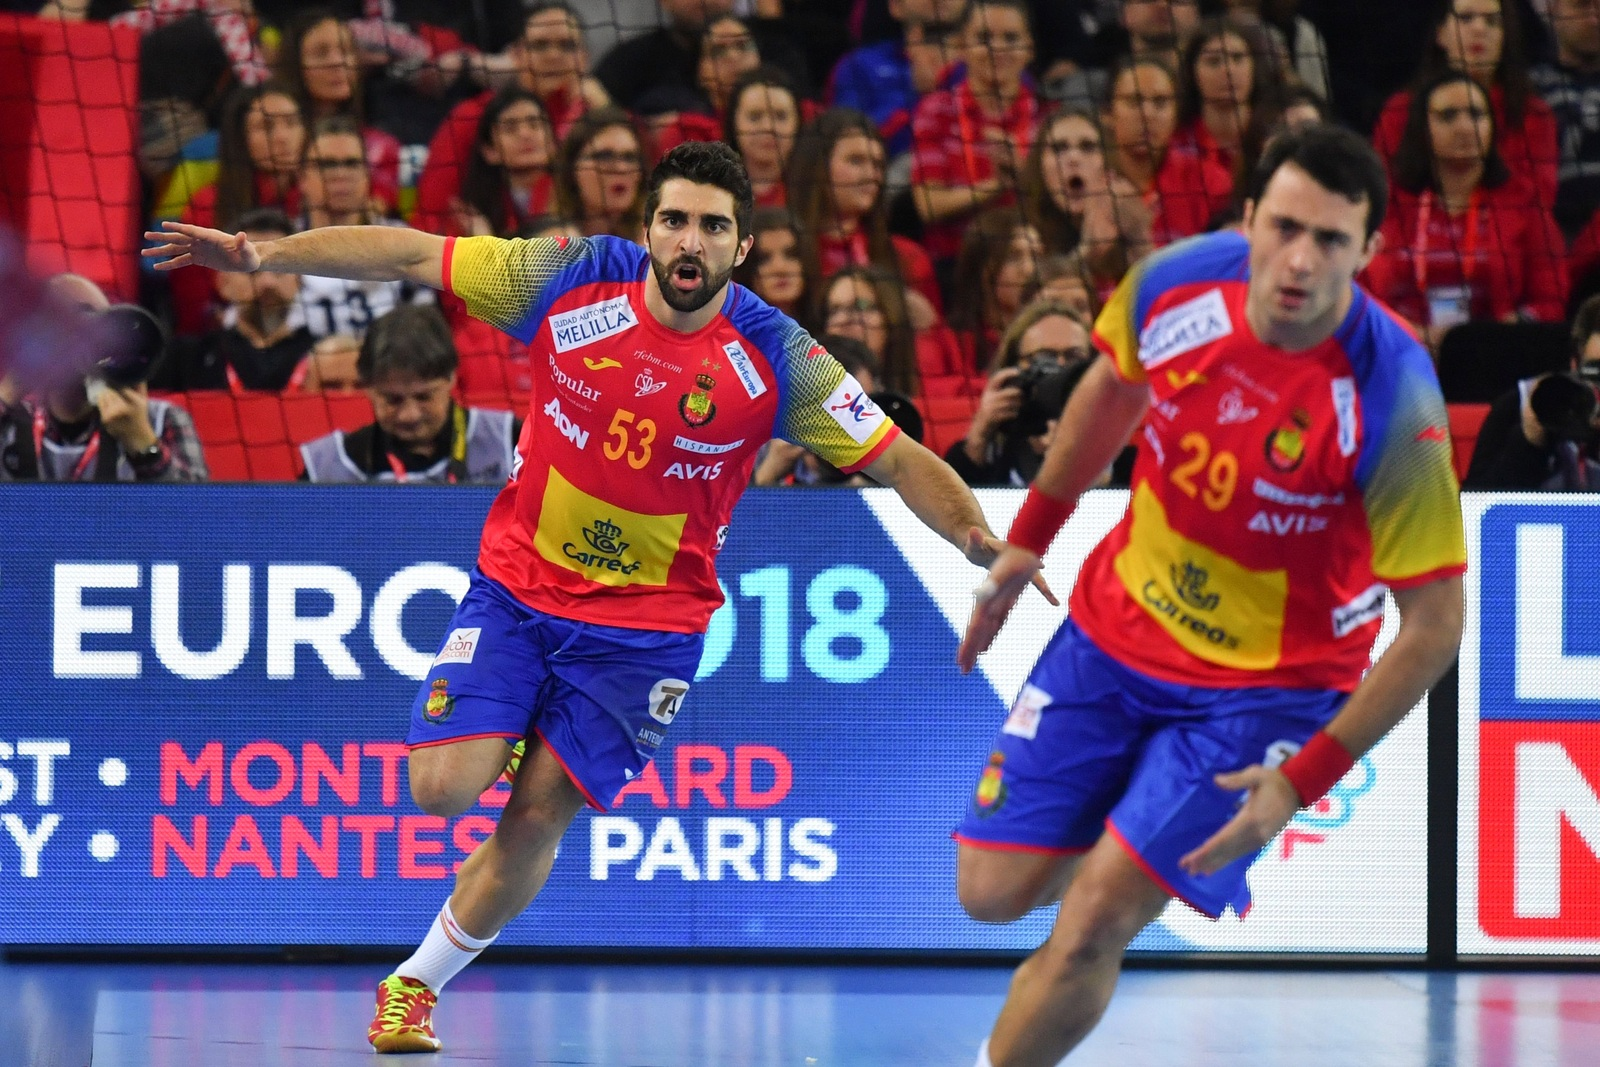 handball finale live ticker